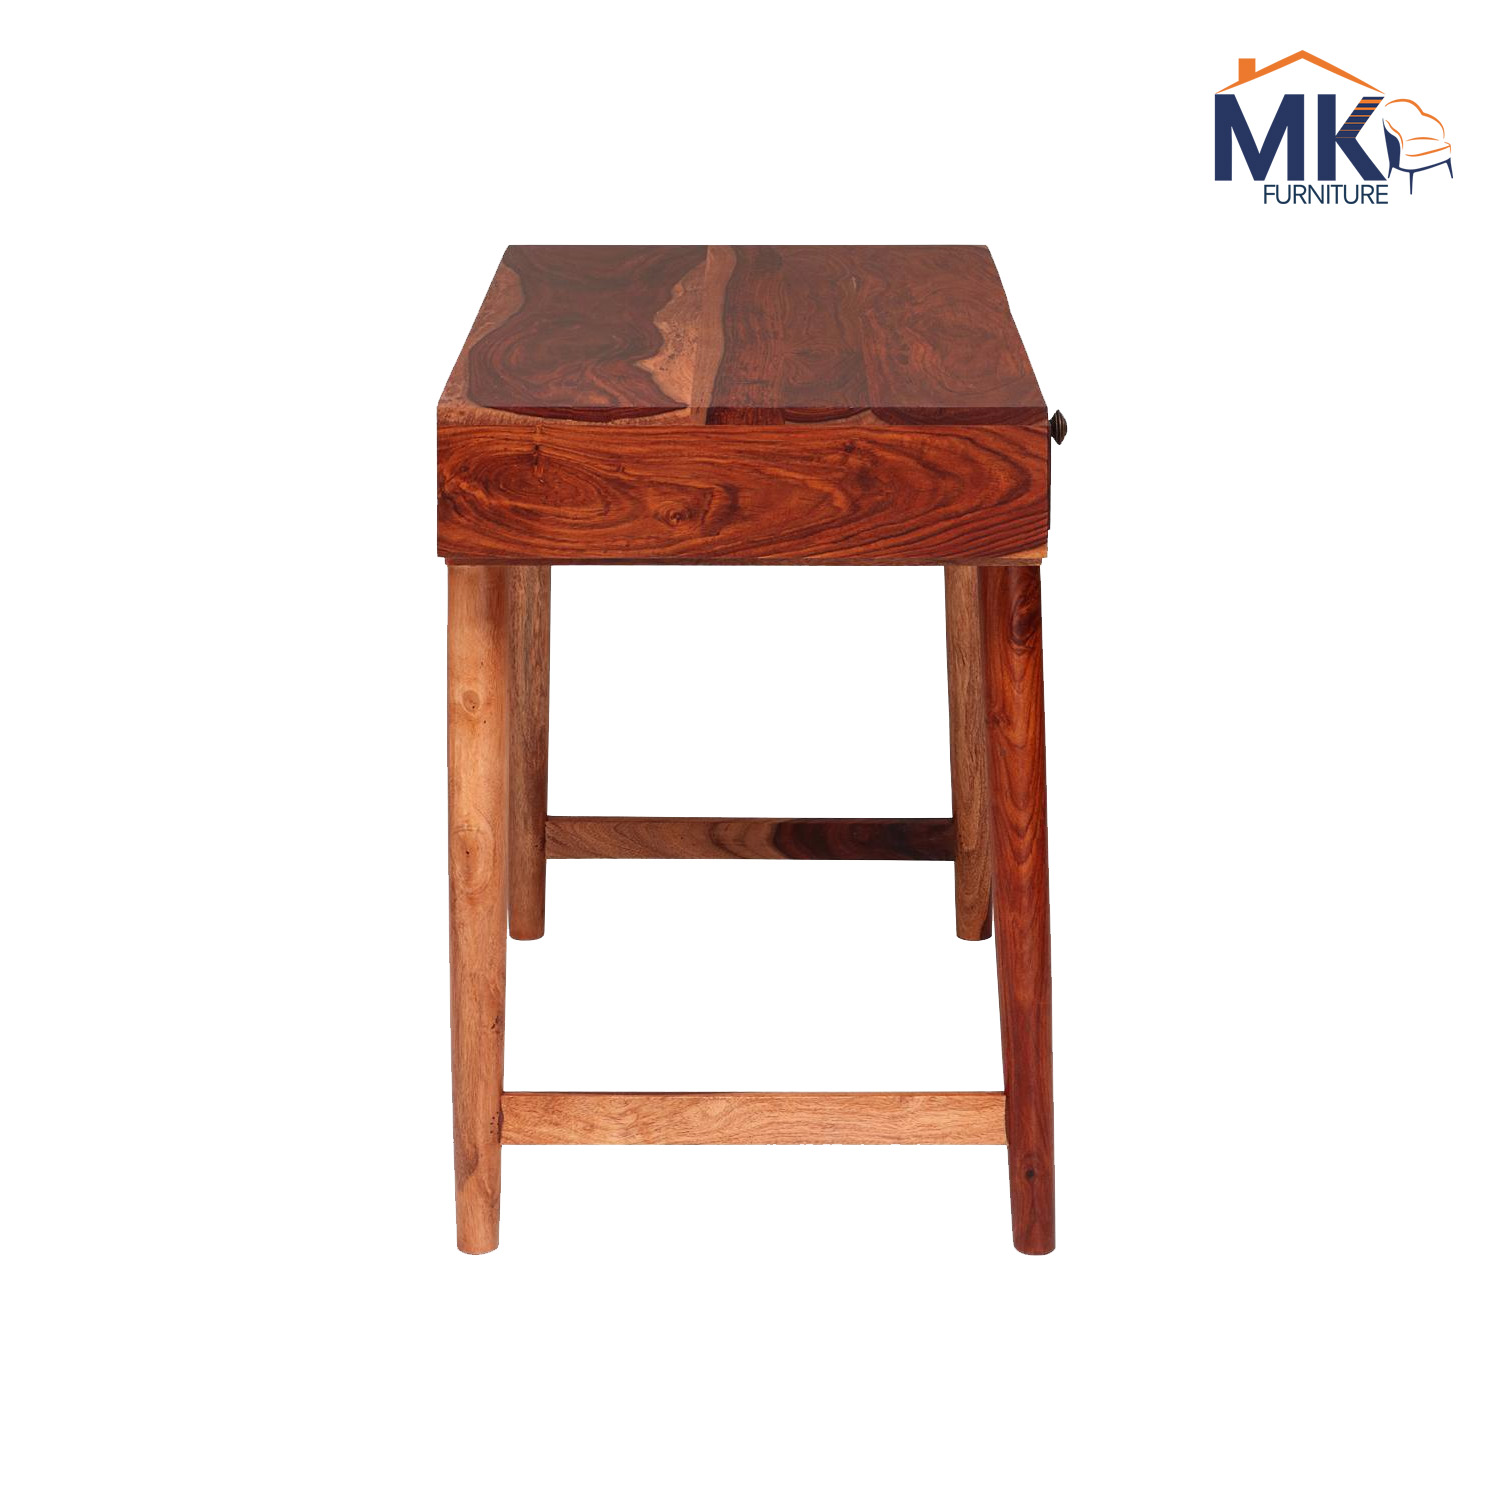 Solid Wood Study Table - Honey